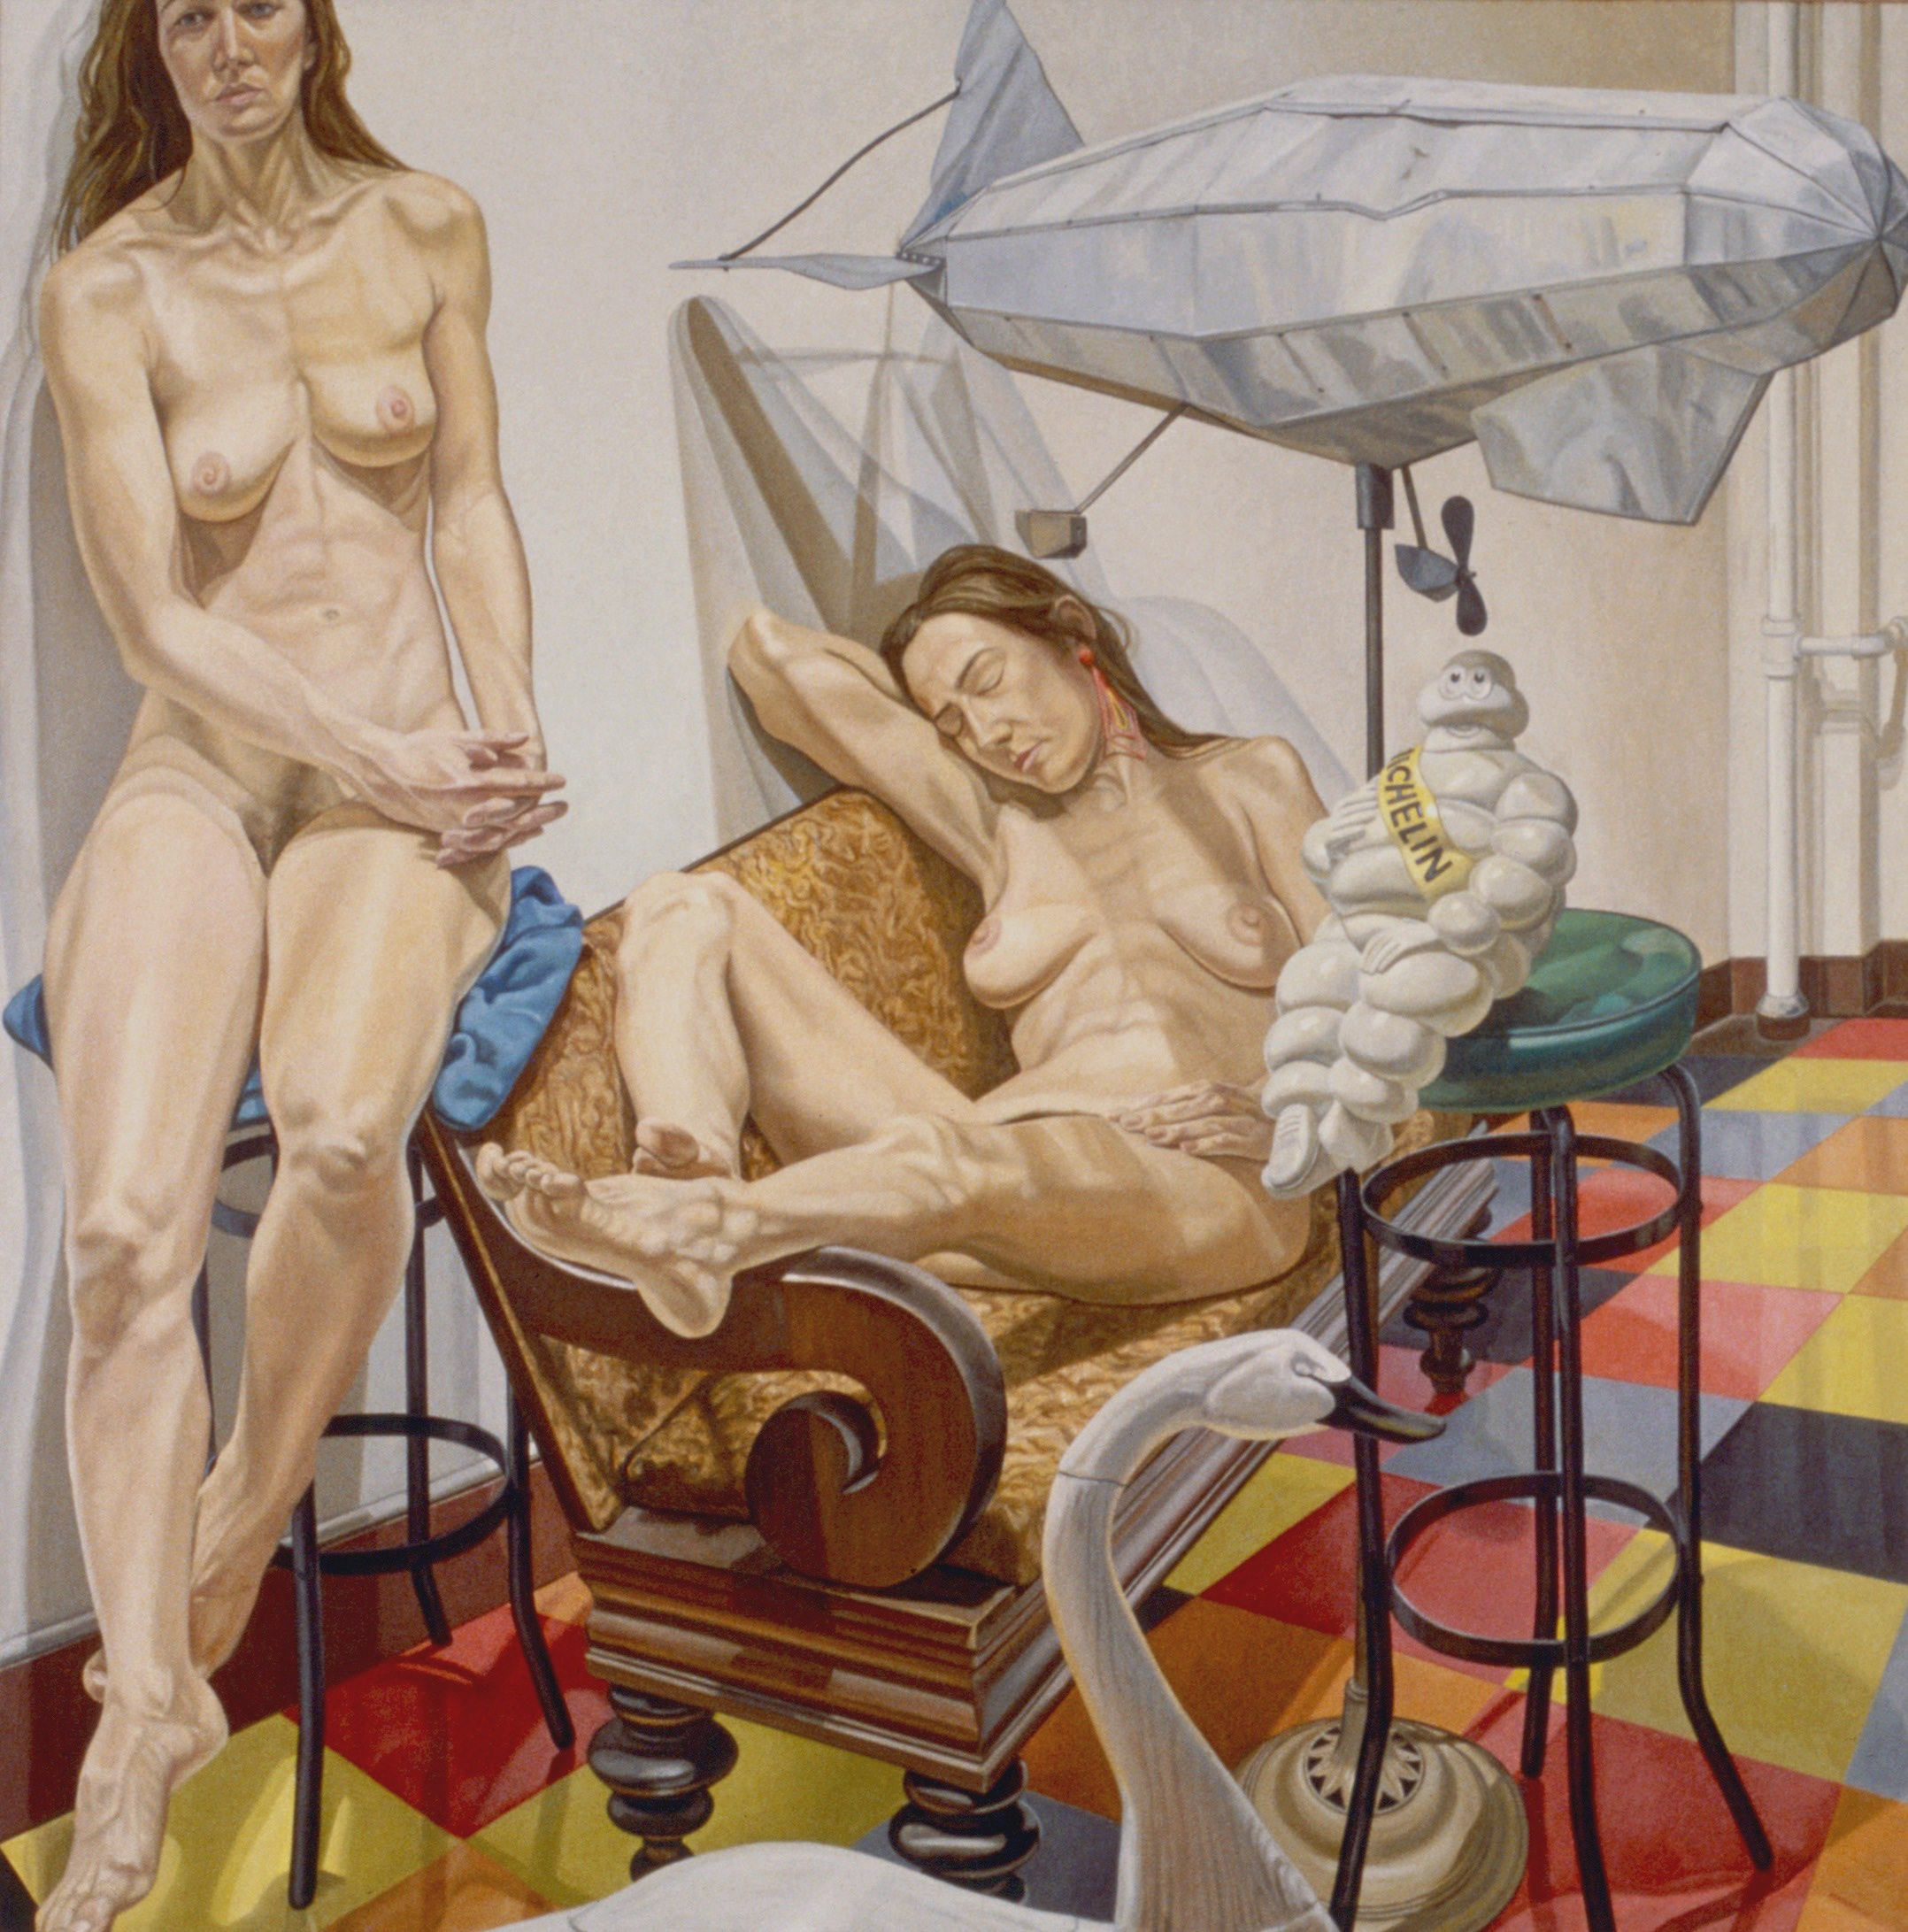 Philip Pearlstein, Models and Blimp, 1991, Oil on canvas 84 x 84 in. (213.4 x 213.4 cm)